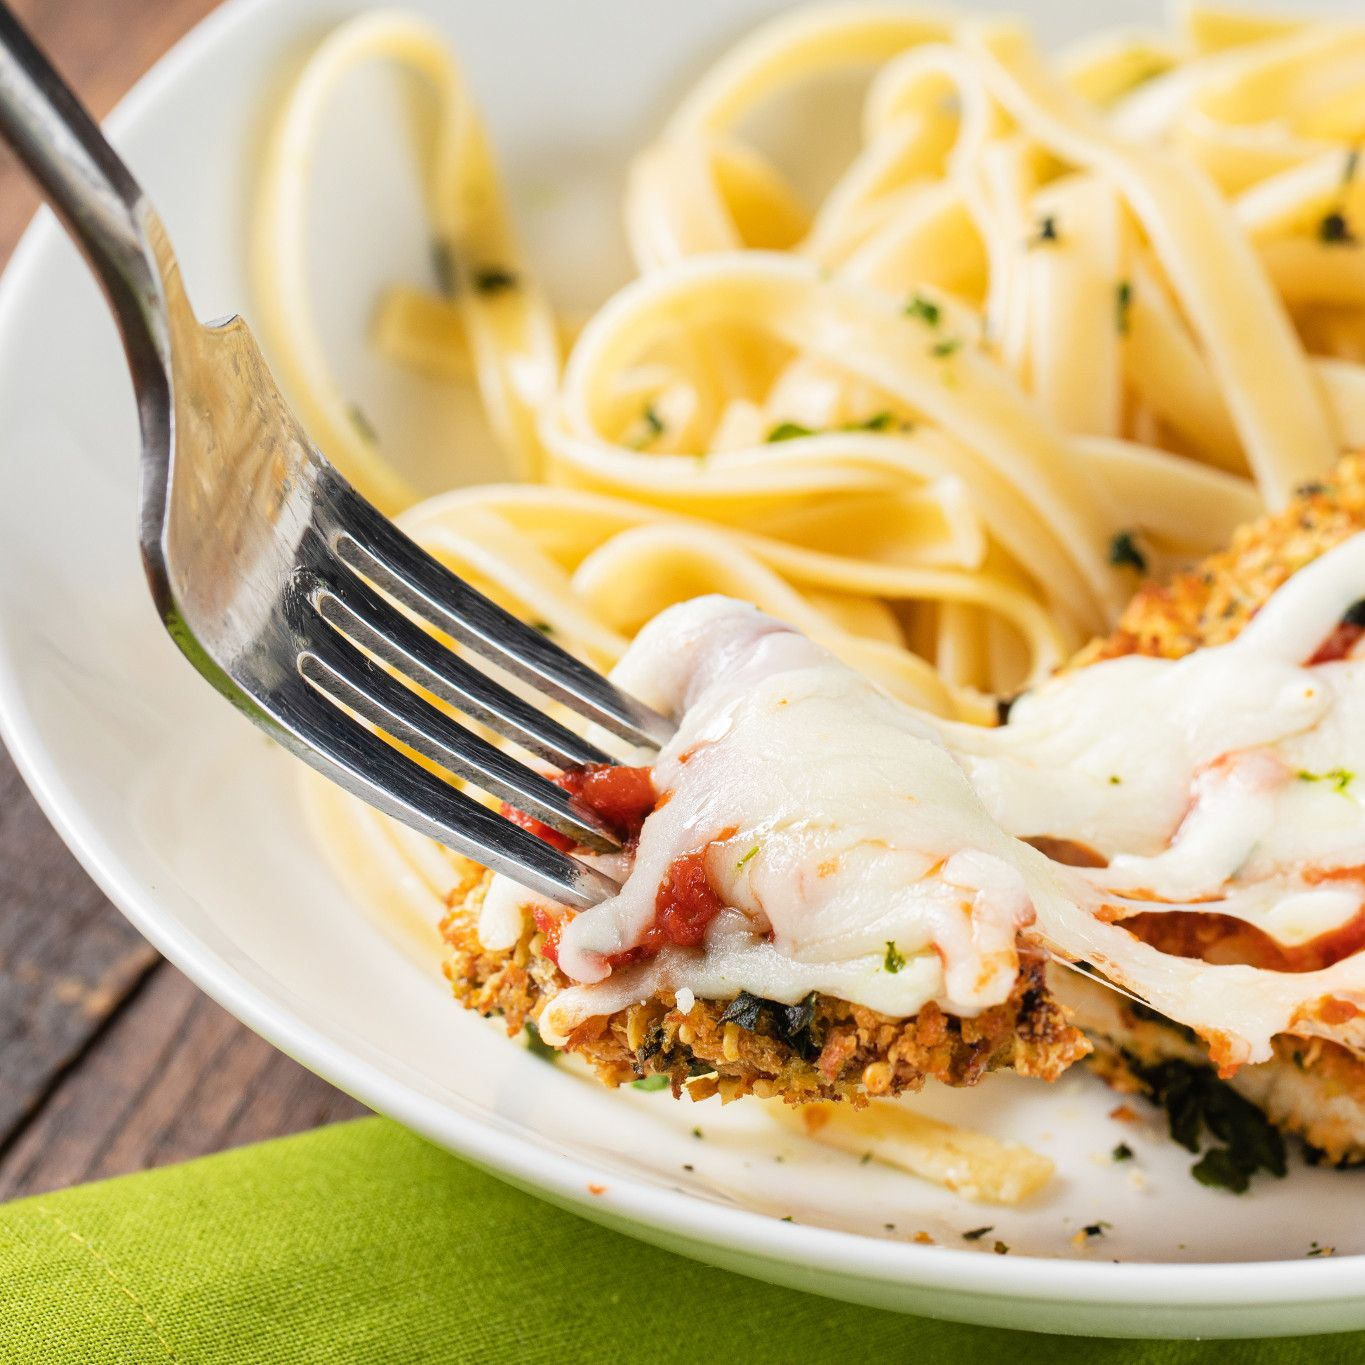 baked_mozzarella_chicken_with_basil_5060.jpg